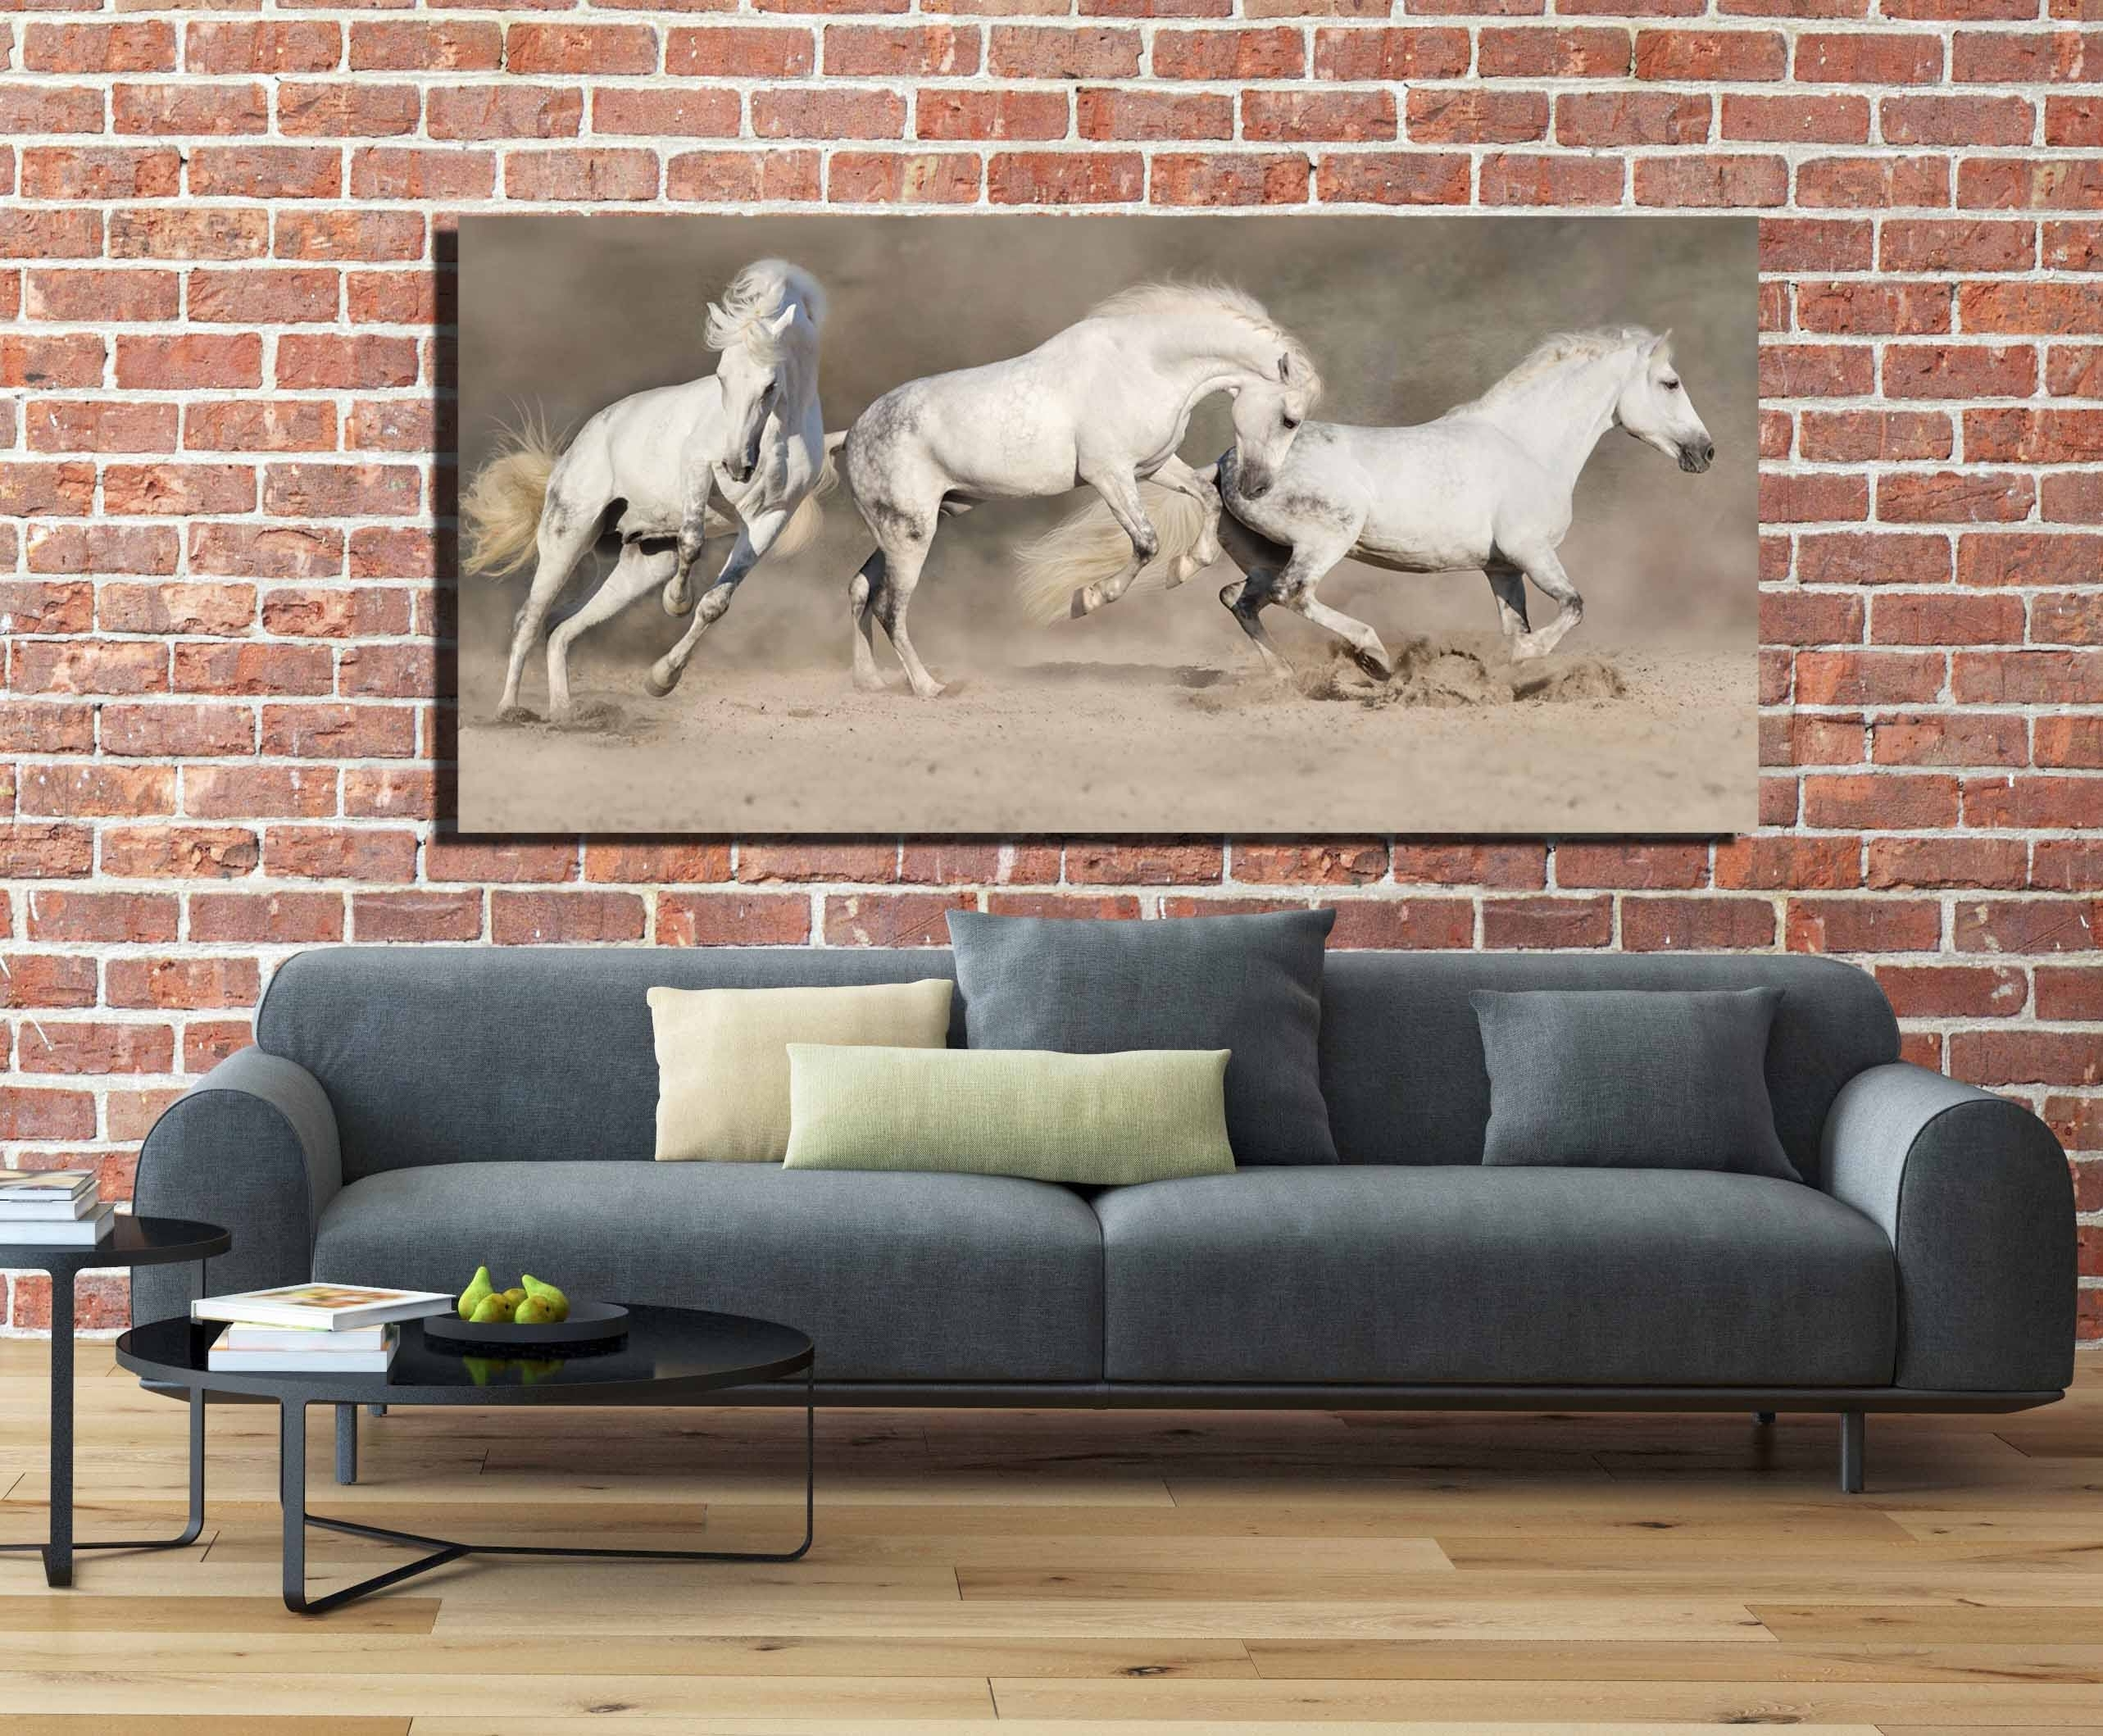 Horse Wall Art,horse Canvas Art,running Horses,running Horses Art With Regard To Most Up To Date Horses Wall Art (View 7 of 20)